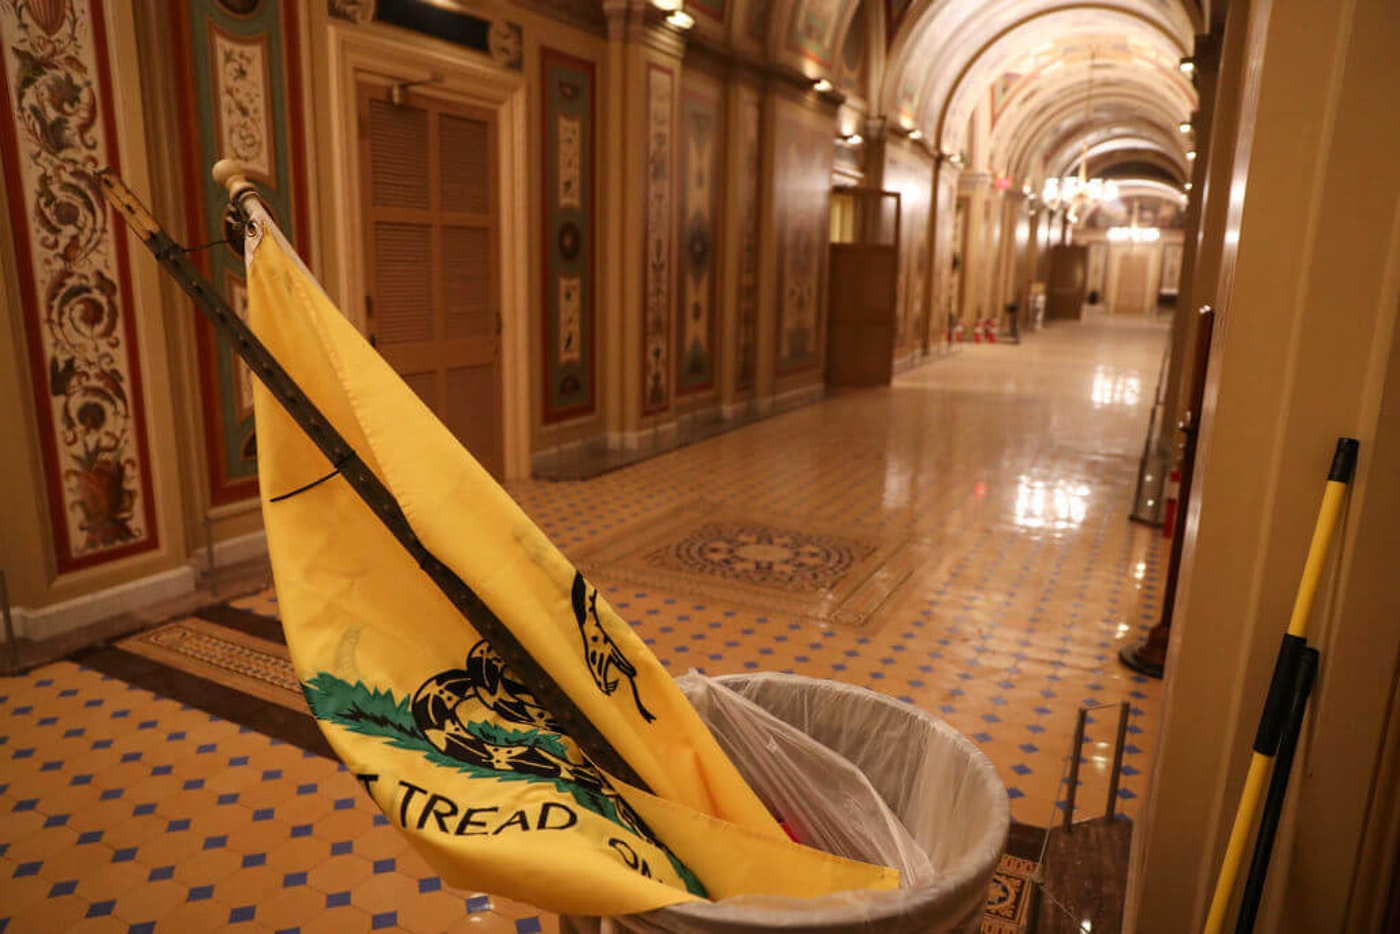 A Gadsden Flag flag left by Pro-Trump terrorists who entered the U.S. Capitol building is seen after mass demonstrations in the nations capital during a joint session Congress to ratify President-elect Joe Biden on January 06, 2021 in Washington, DC. (Photo by Oliver Contreras/For The Washington Post via Getty Images)